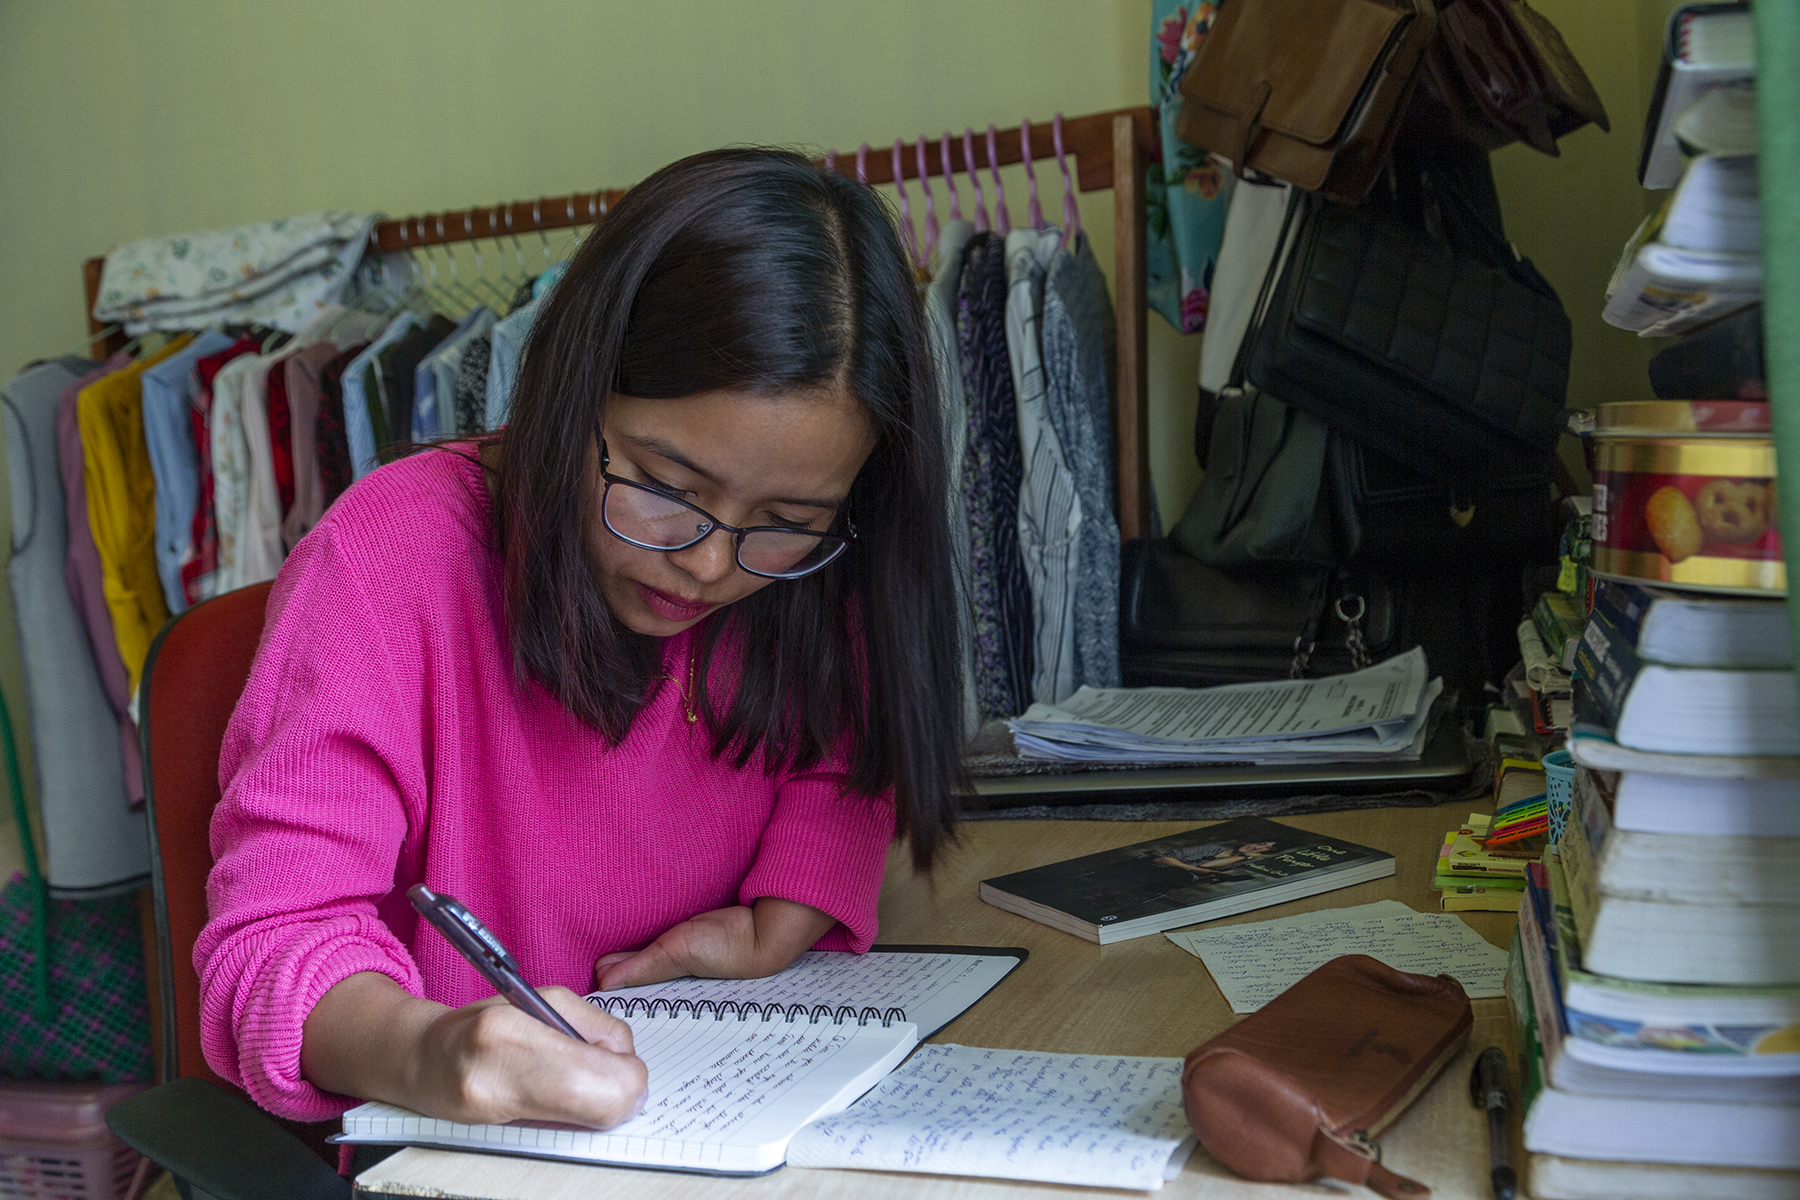 Ashe wearing spectacles and a shocking pink cardigan sits at a table, writing with a pen in a ruled notebook. Behind her is a clothes rack on which hangs a row of clothes hangers with feminine tops of many colours and patterns. The table is crowded with piles of books.